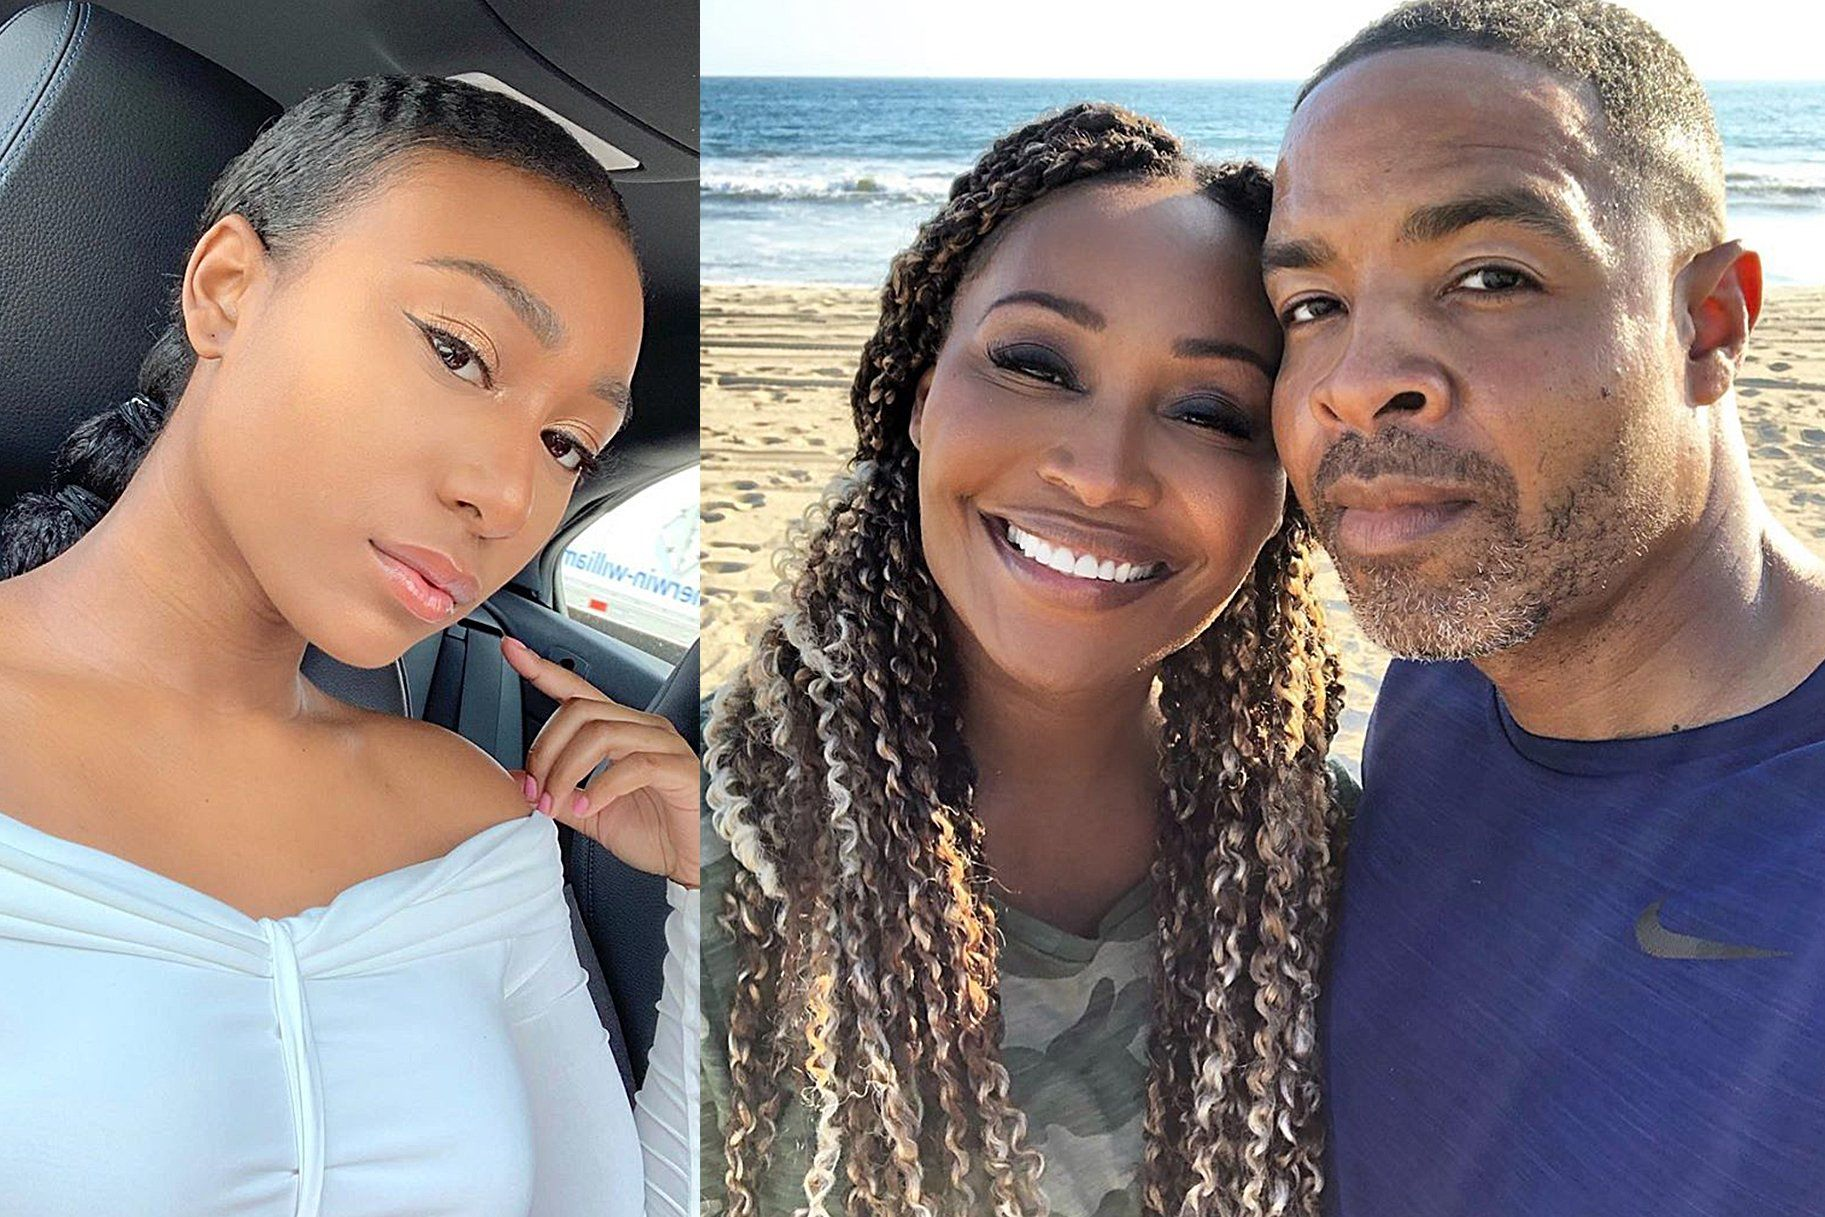 RHOA: Cynthia Bailey Explains Her Daughter's Living Situation With Mike Hill #CynthiaBailey, #MikeHill, #NoelleRobinson, #RealHousewives, #Rhoa celebrityinsider.org #Entertainment #celebrityinsider #celebritynews #celebrities #celebrity